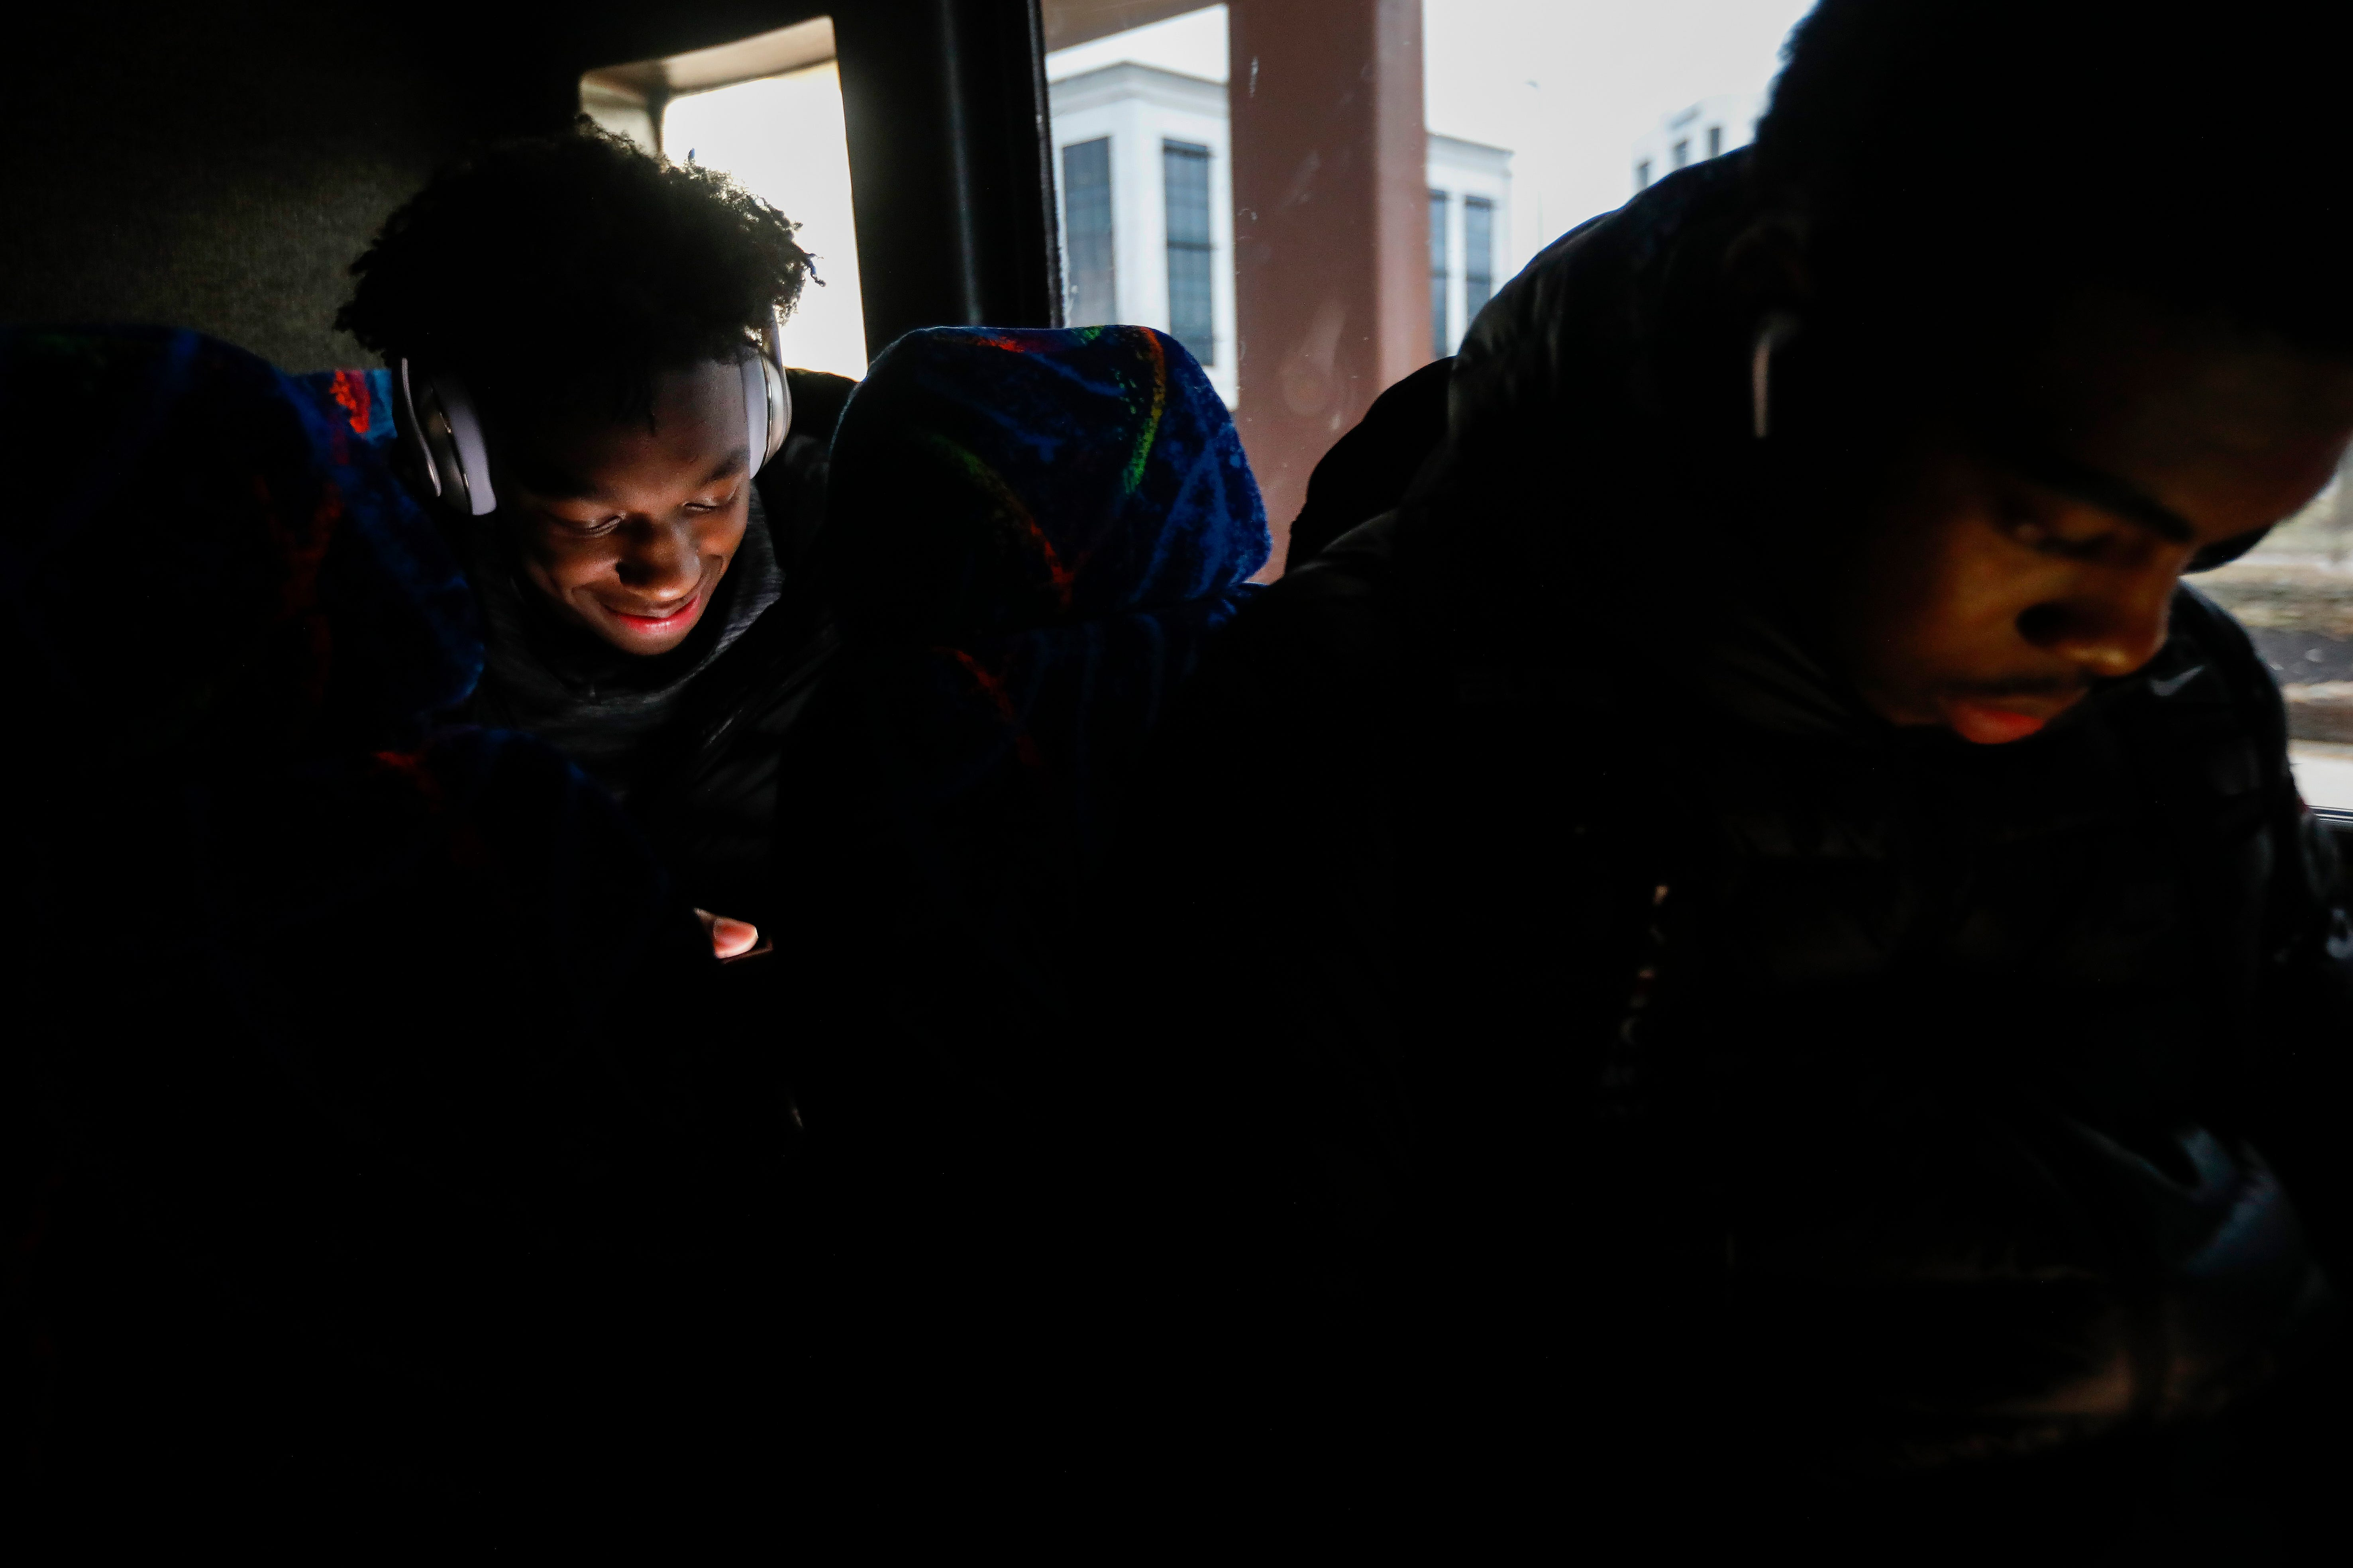 James Wiseman, left, of Memphis East High School, smiles as he looks at his phone while riding on the bus to JQH Arena for the Bass Pro Shops Tournament of Champions on Thursday, Jan. 17, 2019.